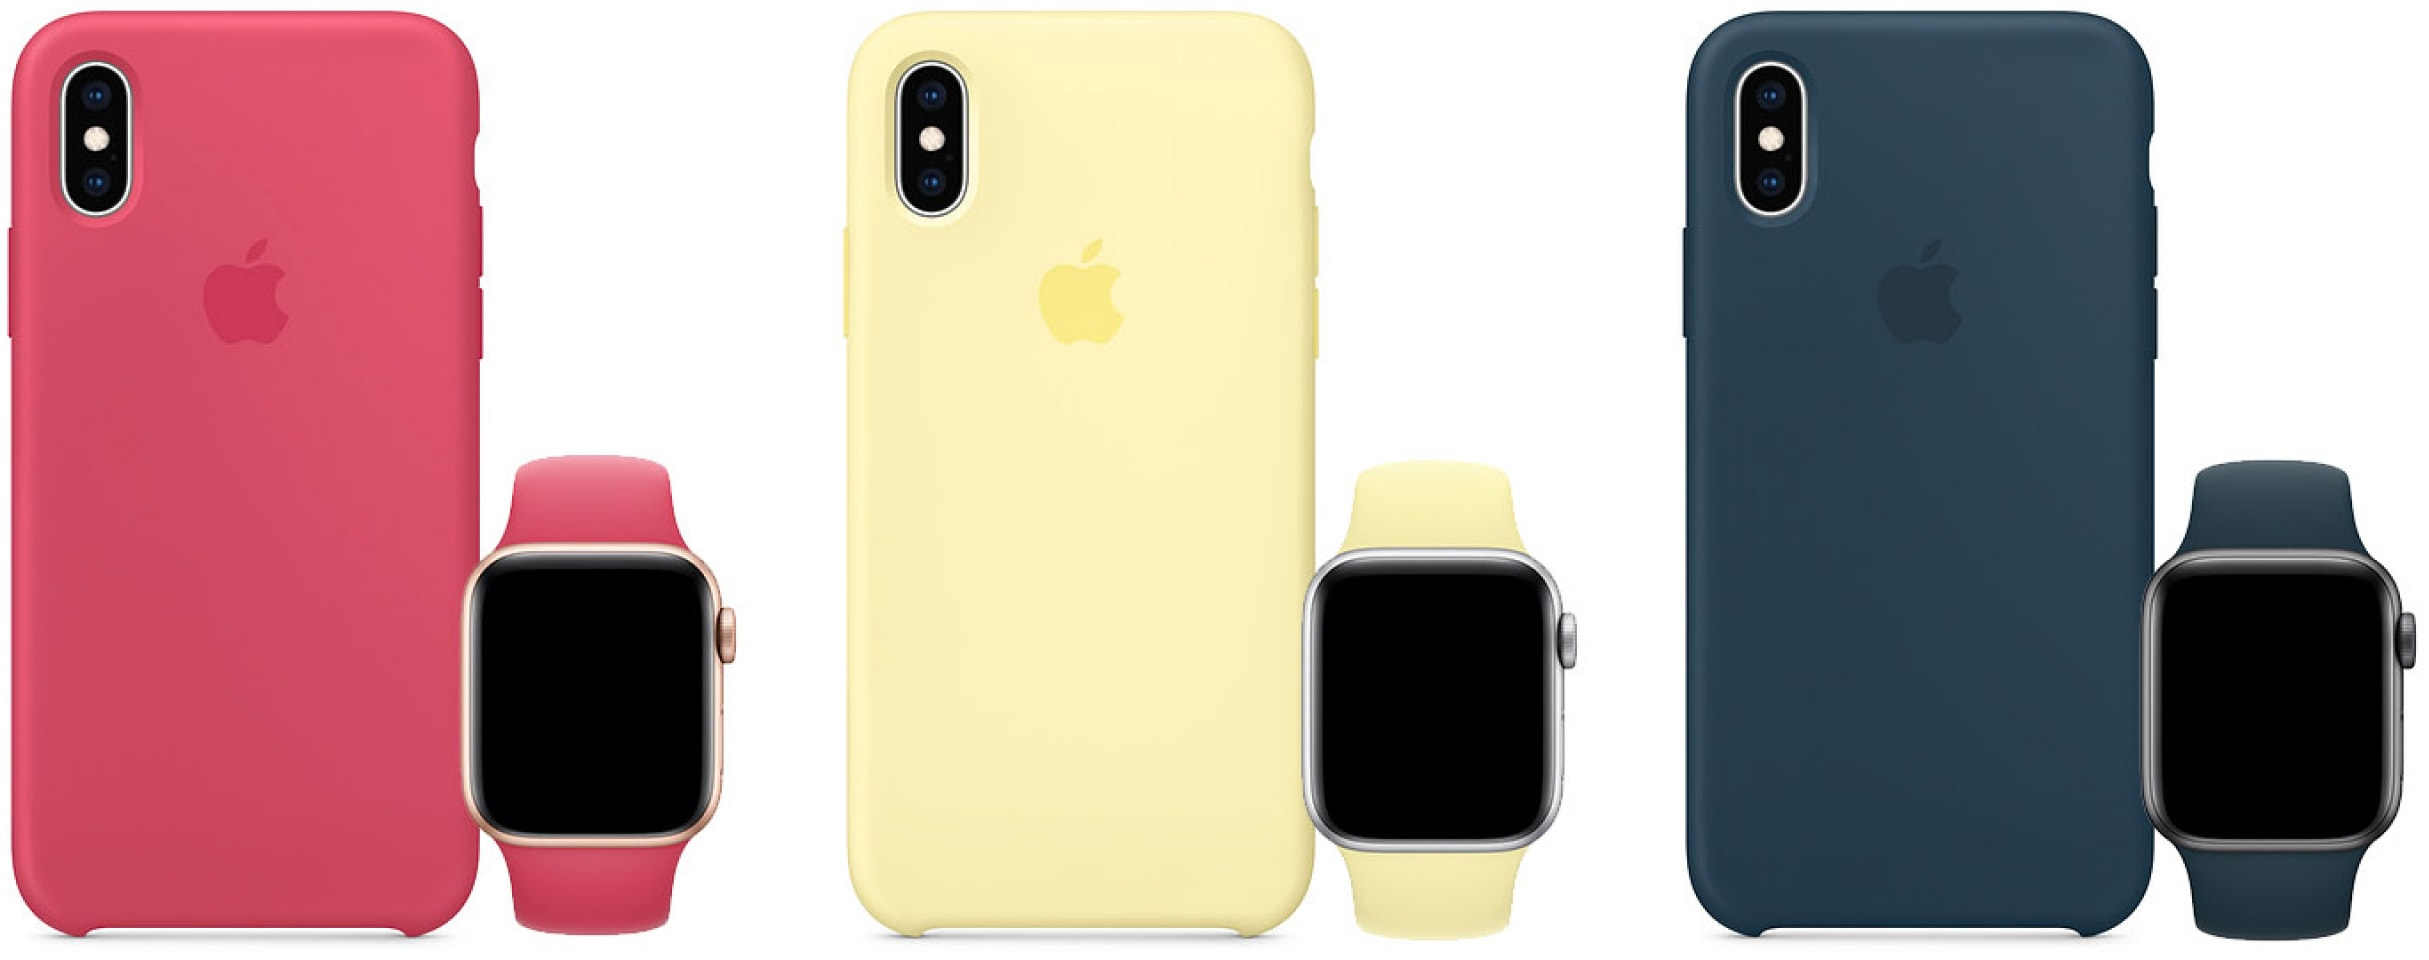 Novas cores de cases para iPhones e pulseiras do Apple Watch